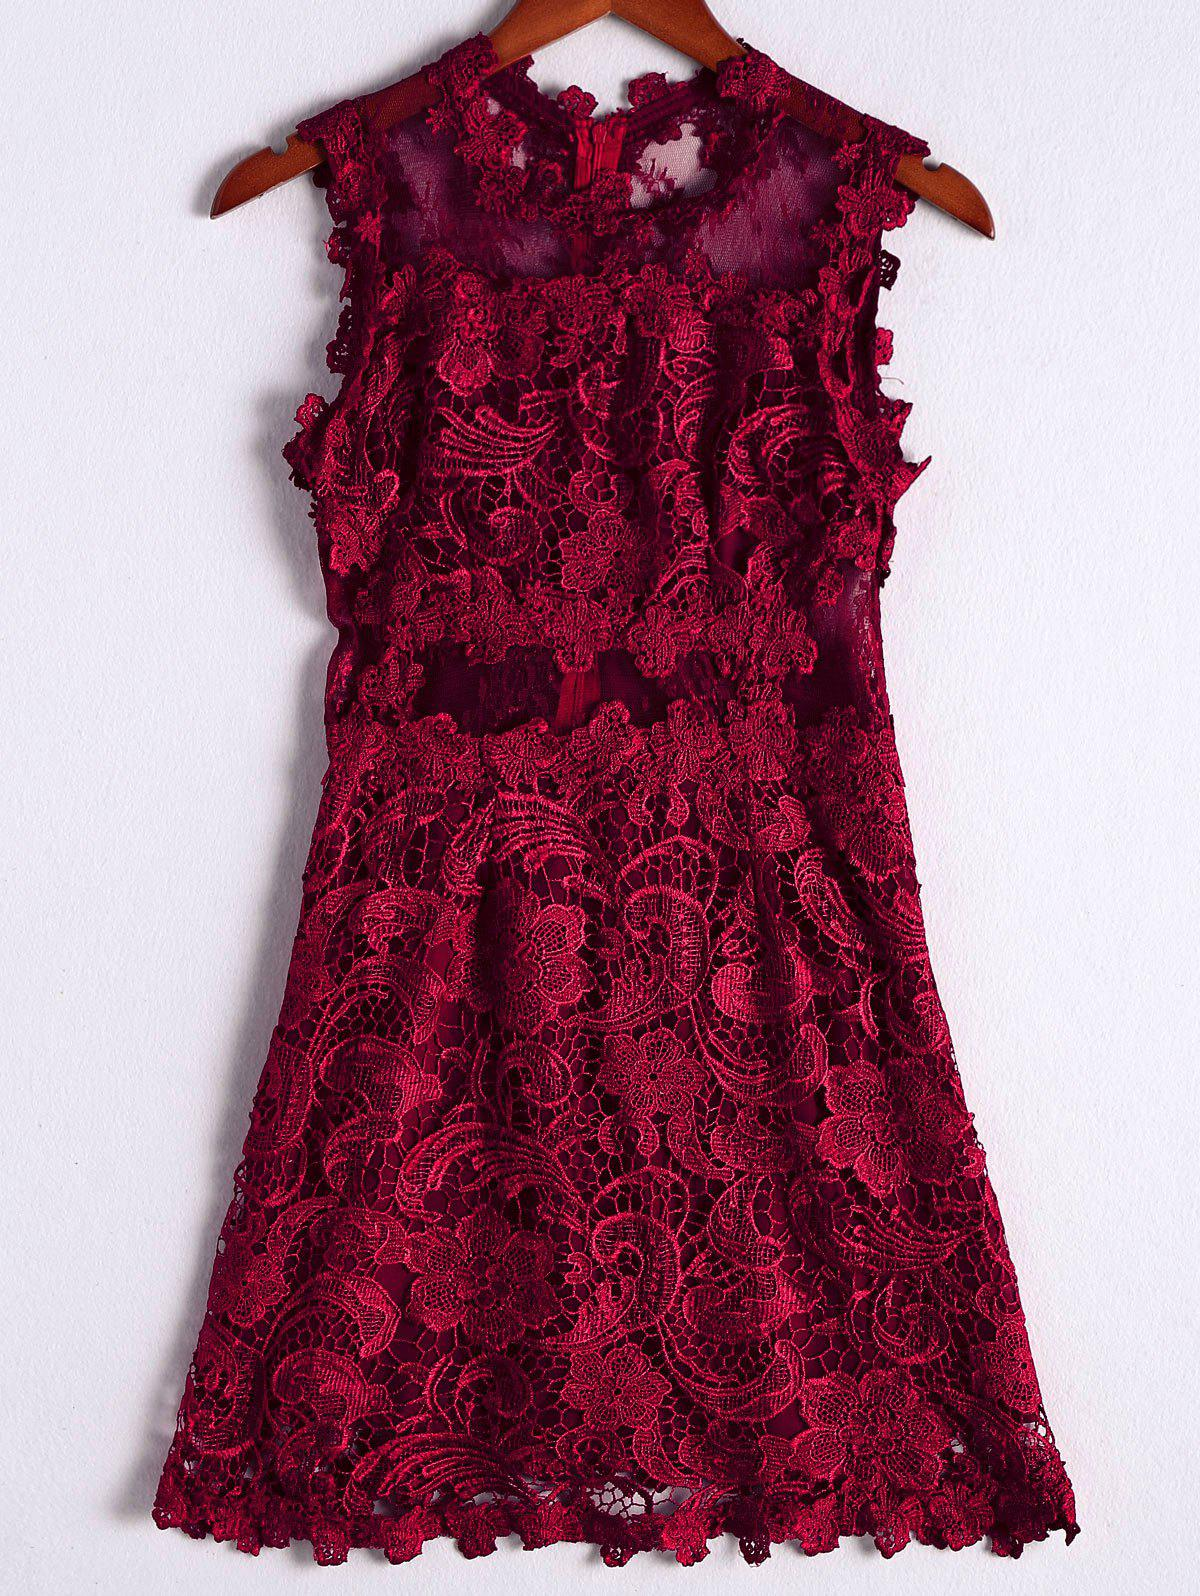 Stylish Women's Solid Color Scoop Neck Lace Sleeveless Knee-Length Dress - DEEP RED L